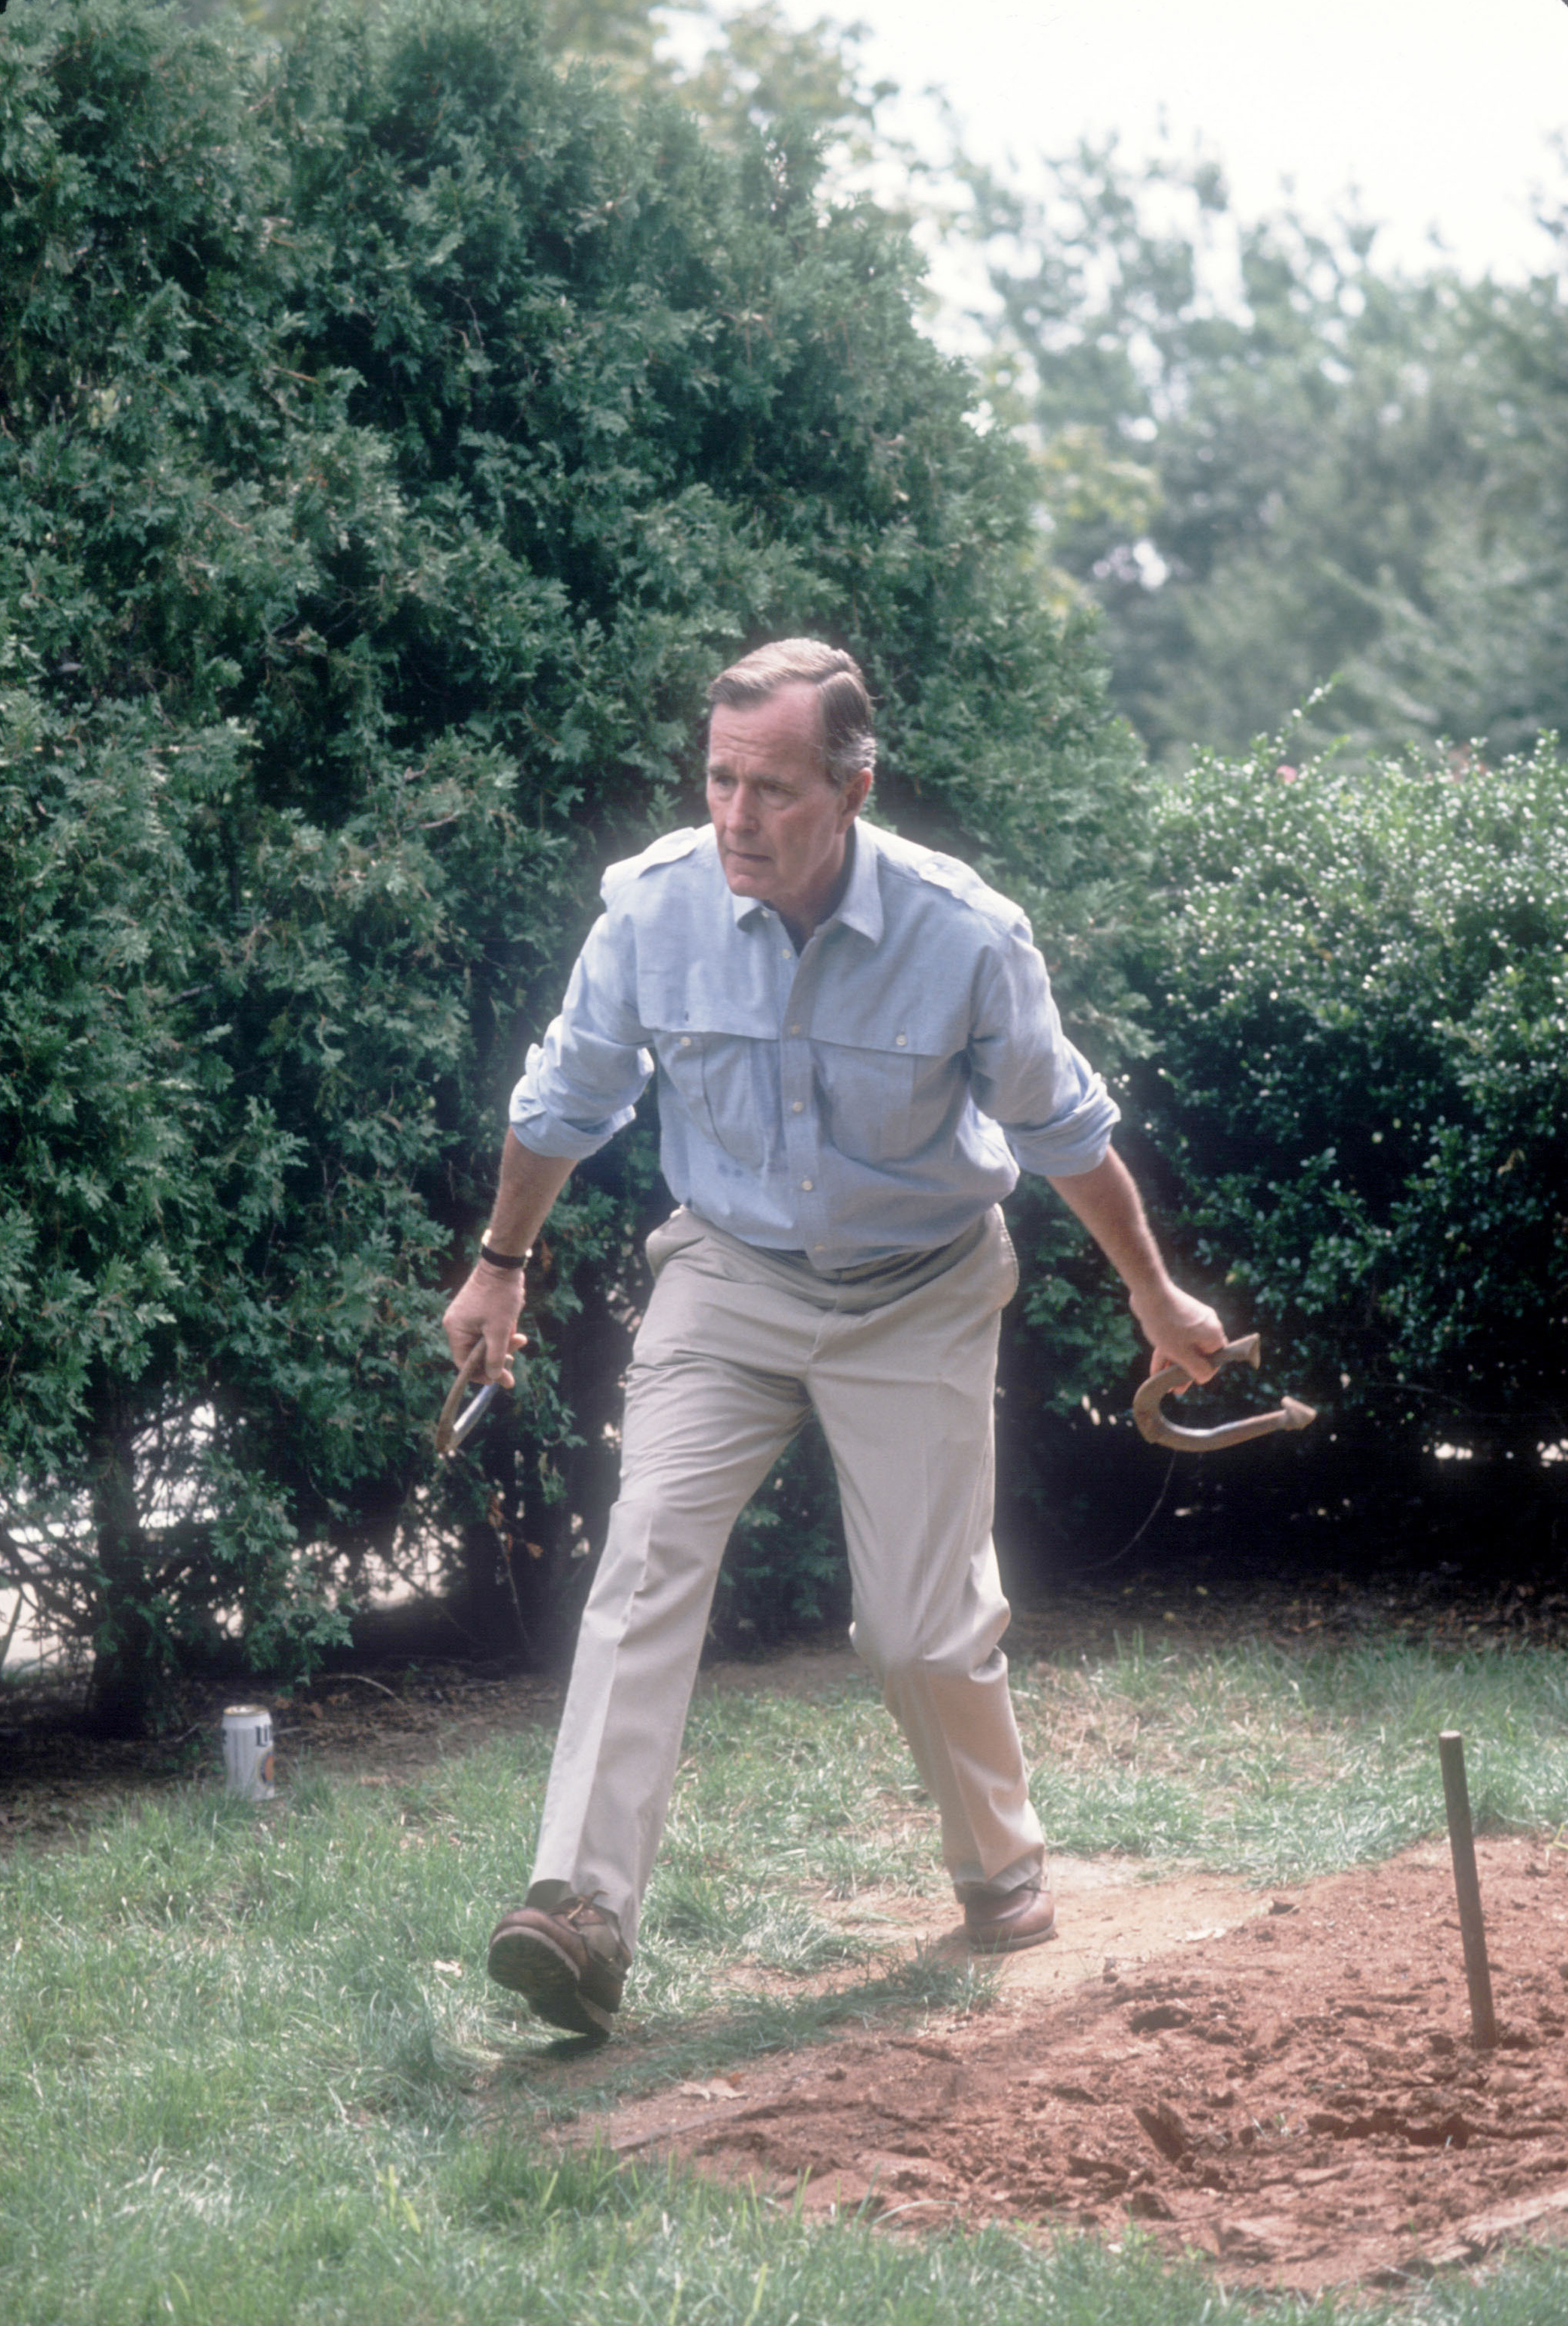 Vice President George H.W. Bush prepares to throw a horseshoe while on the campaign trail on  September 3, 1988. Bush and his running mate Dan Quayle defeated Michael Dukakis in the Presidential election.